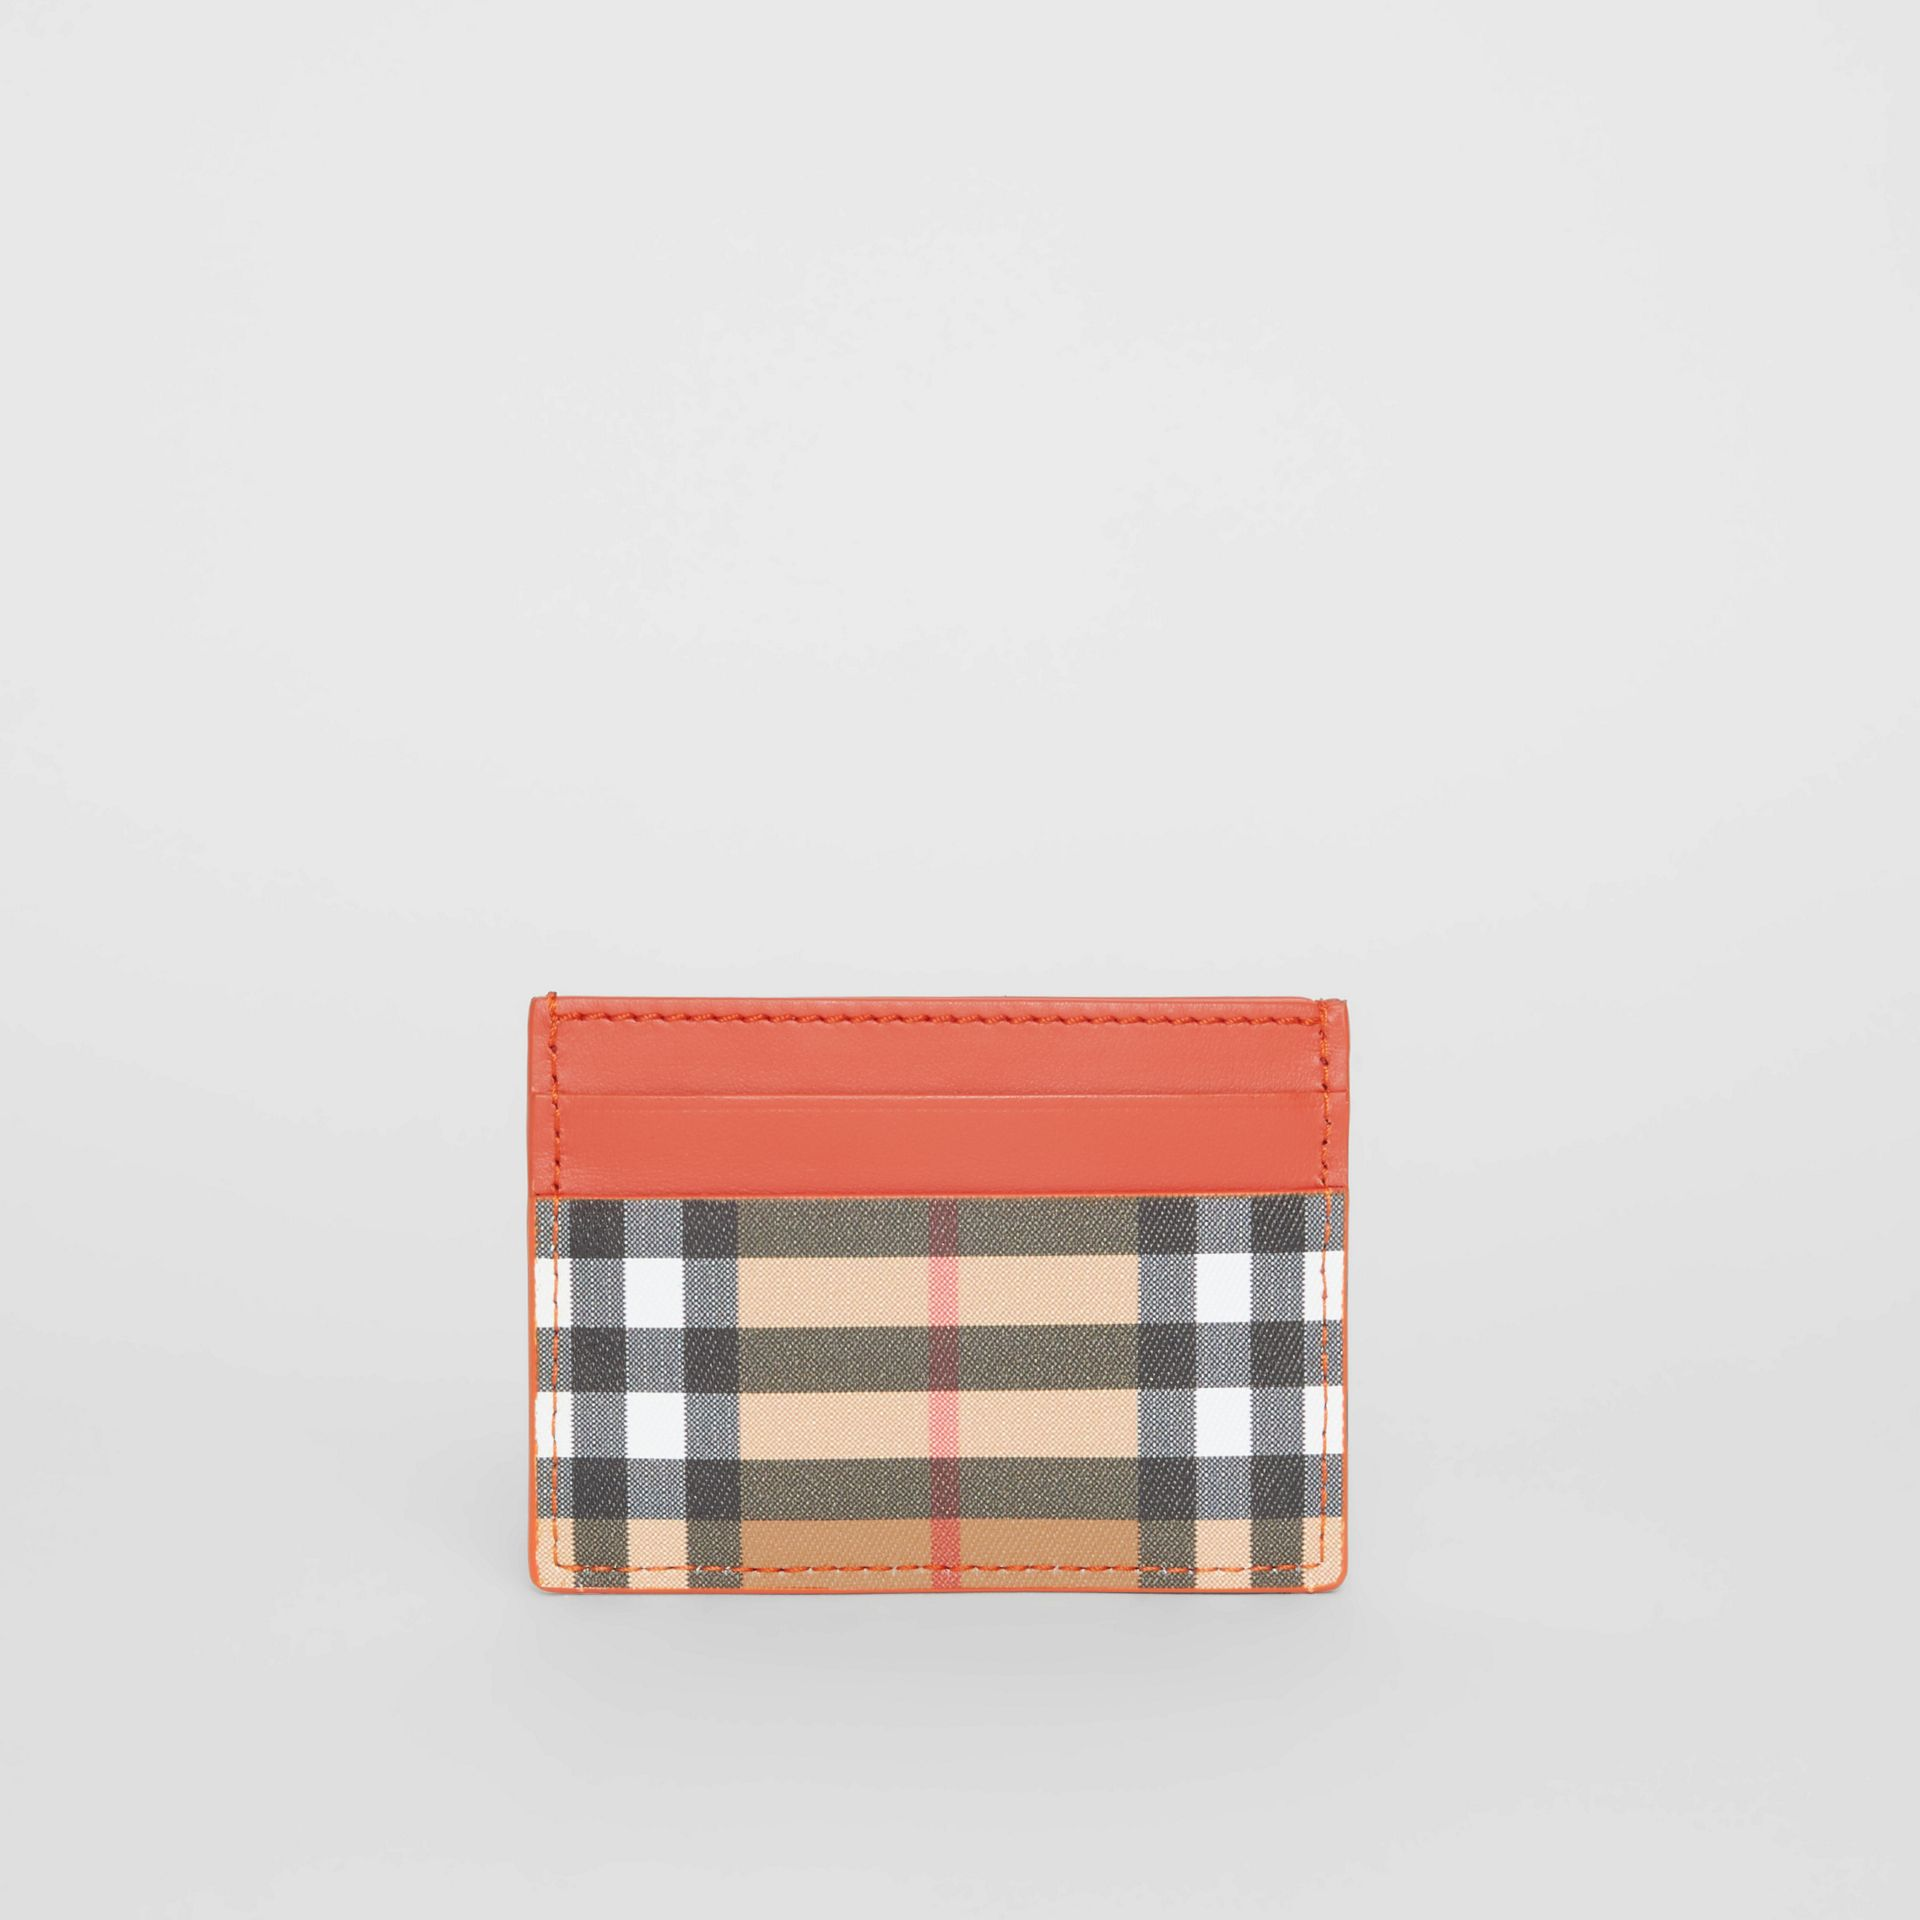 Vintage Check and Leather Card Case in Clementine - Women | Burberry Hong Kong S.A.R - gallery image 4